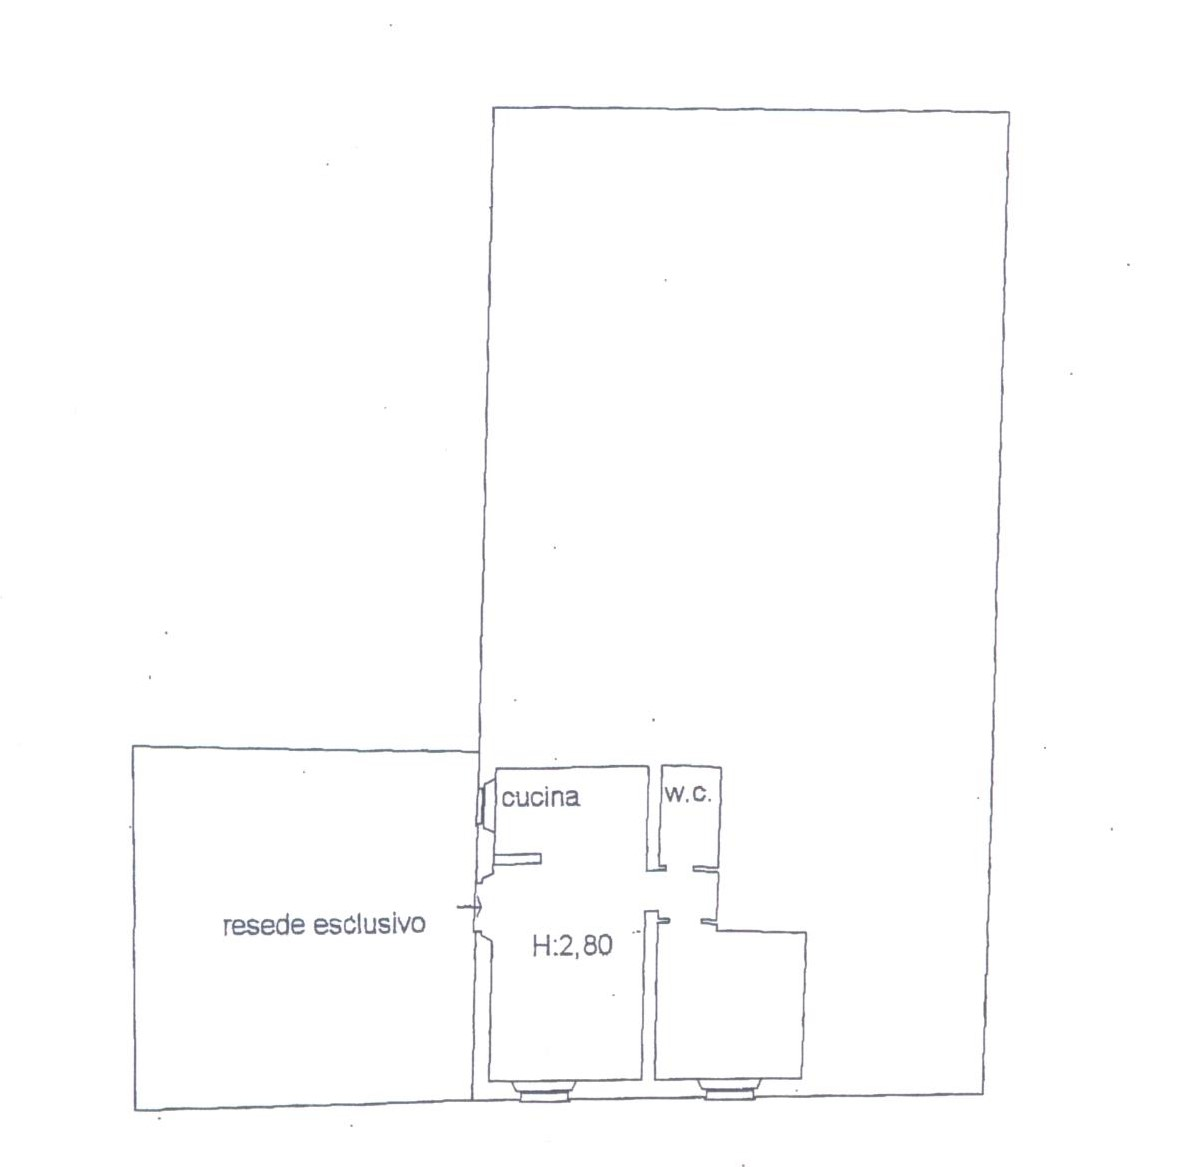 Plan 1/1 for ref. F/0140